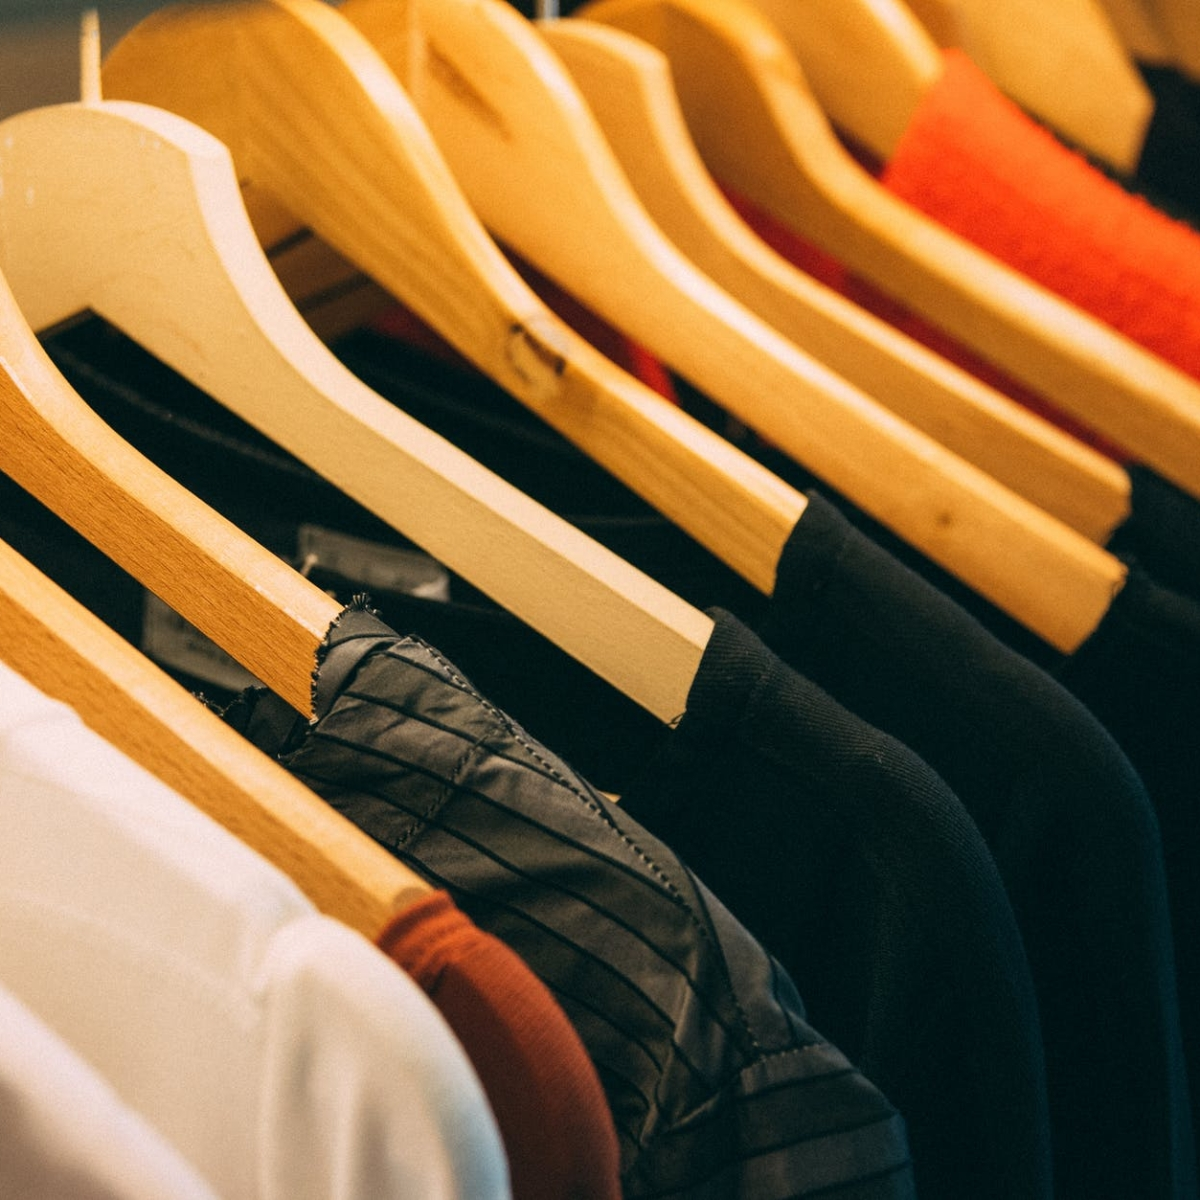 Bhopal: When it comes to apparels, people pick brick & mortar stores to online